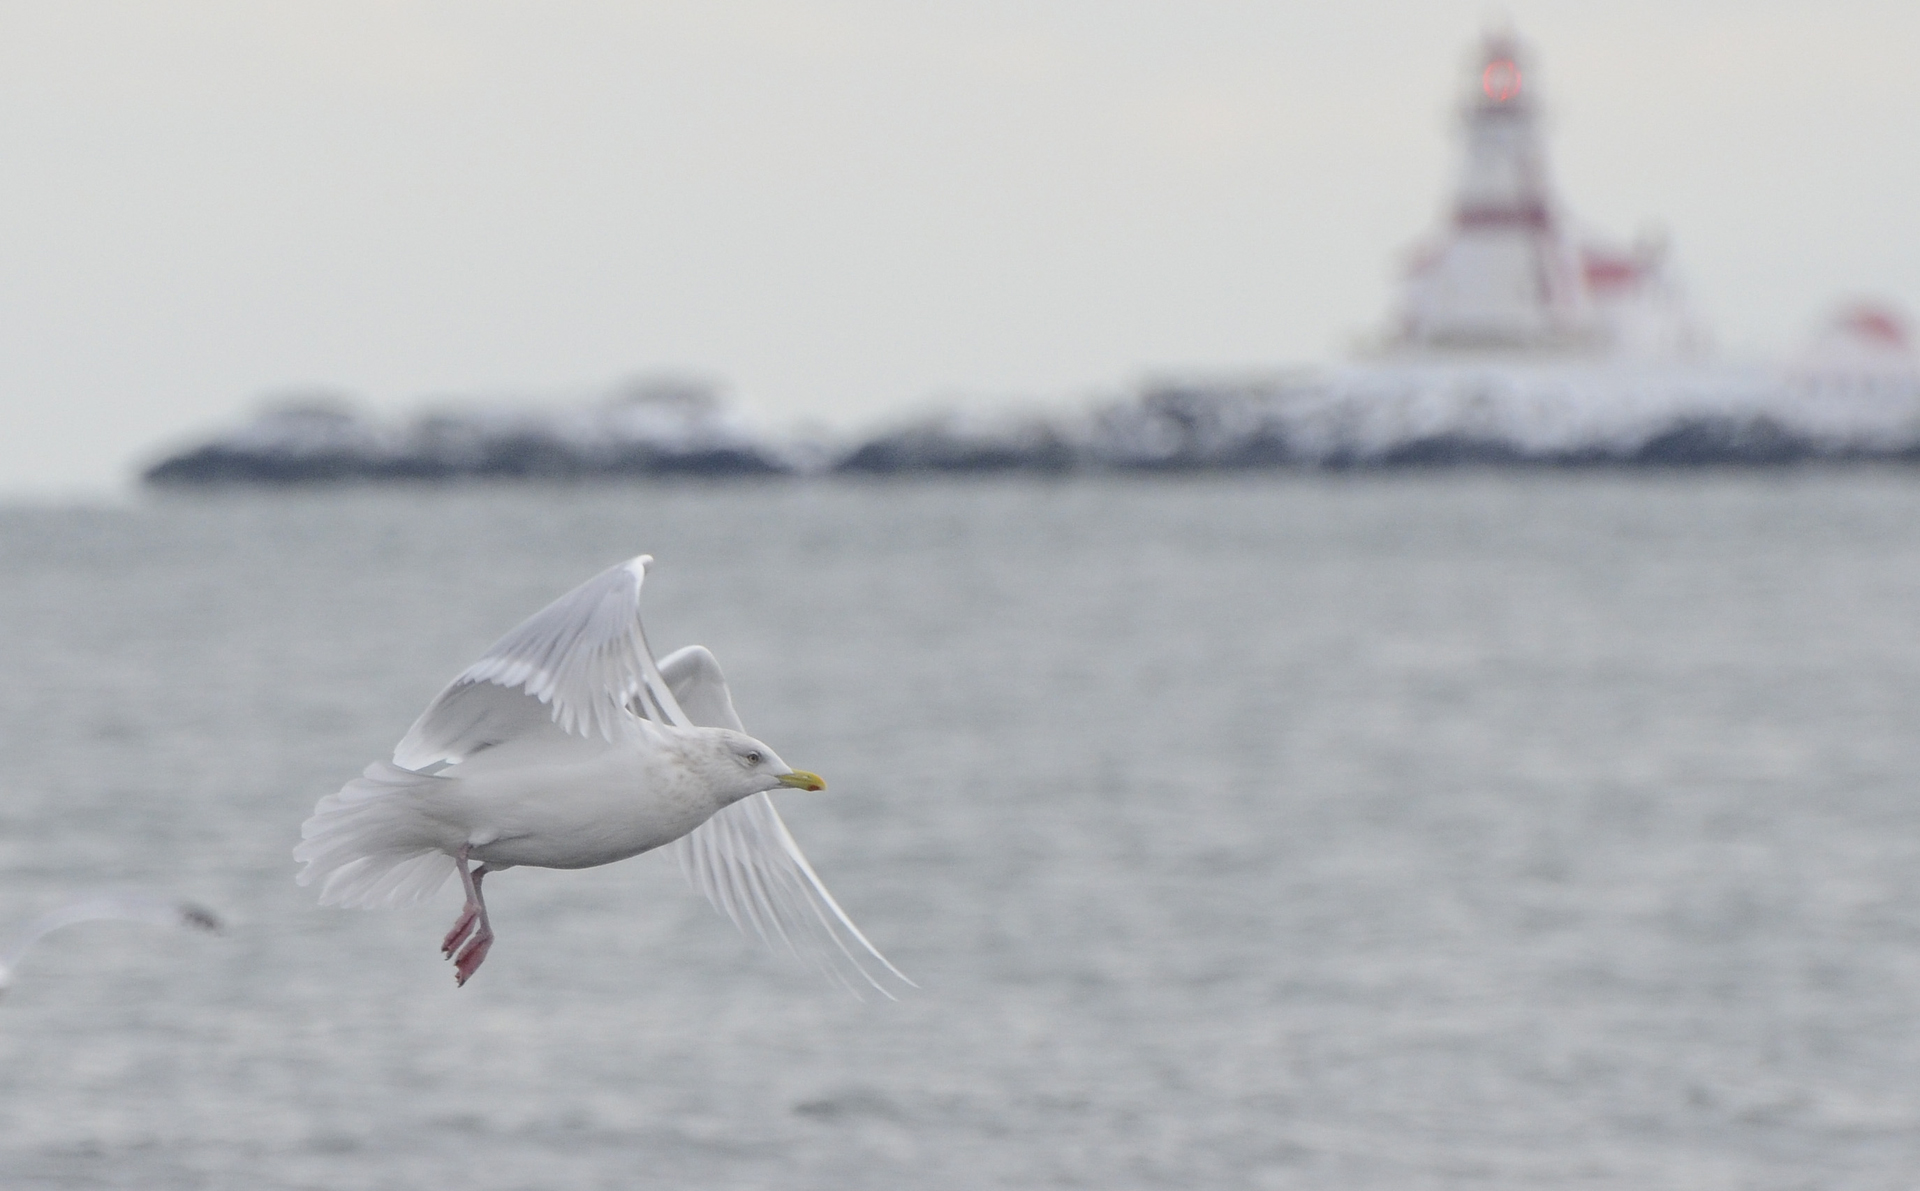 photo of an Iceland gull with East Quoddy Head Lighthouse in the background